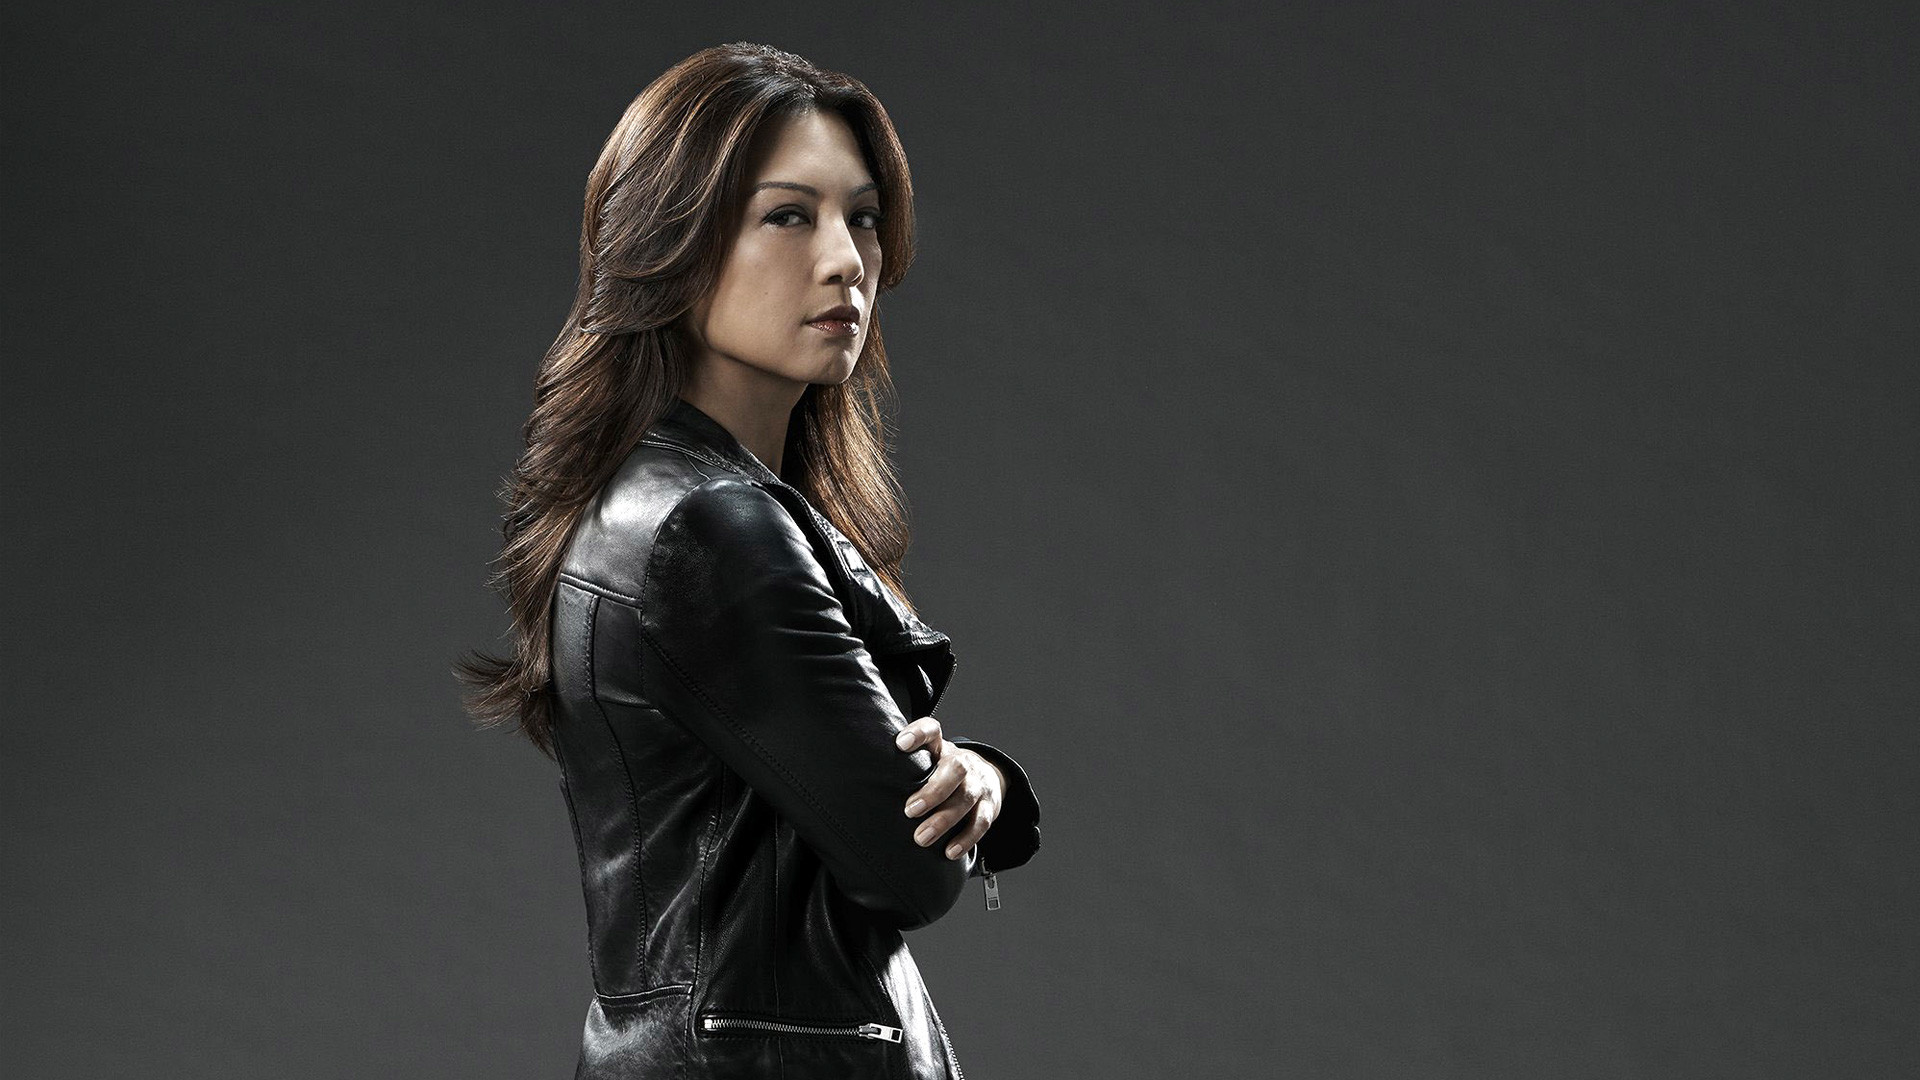 1920x1080 Agents of SHIELD Wallpapers HD - WallpaperSafari Ming Na Wen Agents of  SHIELD ...